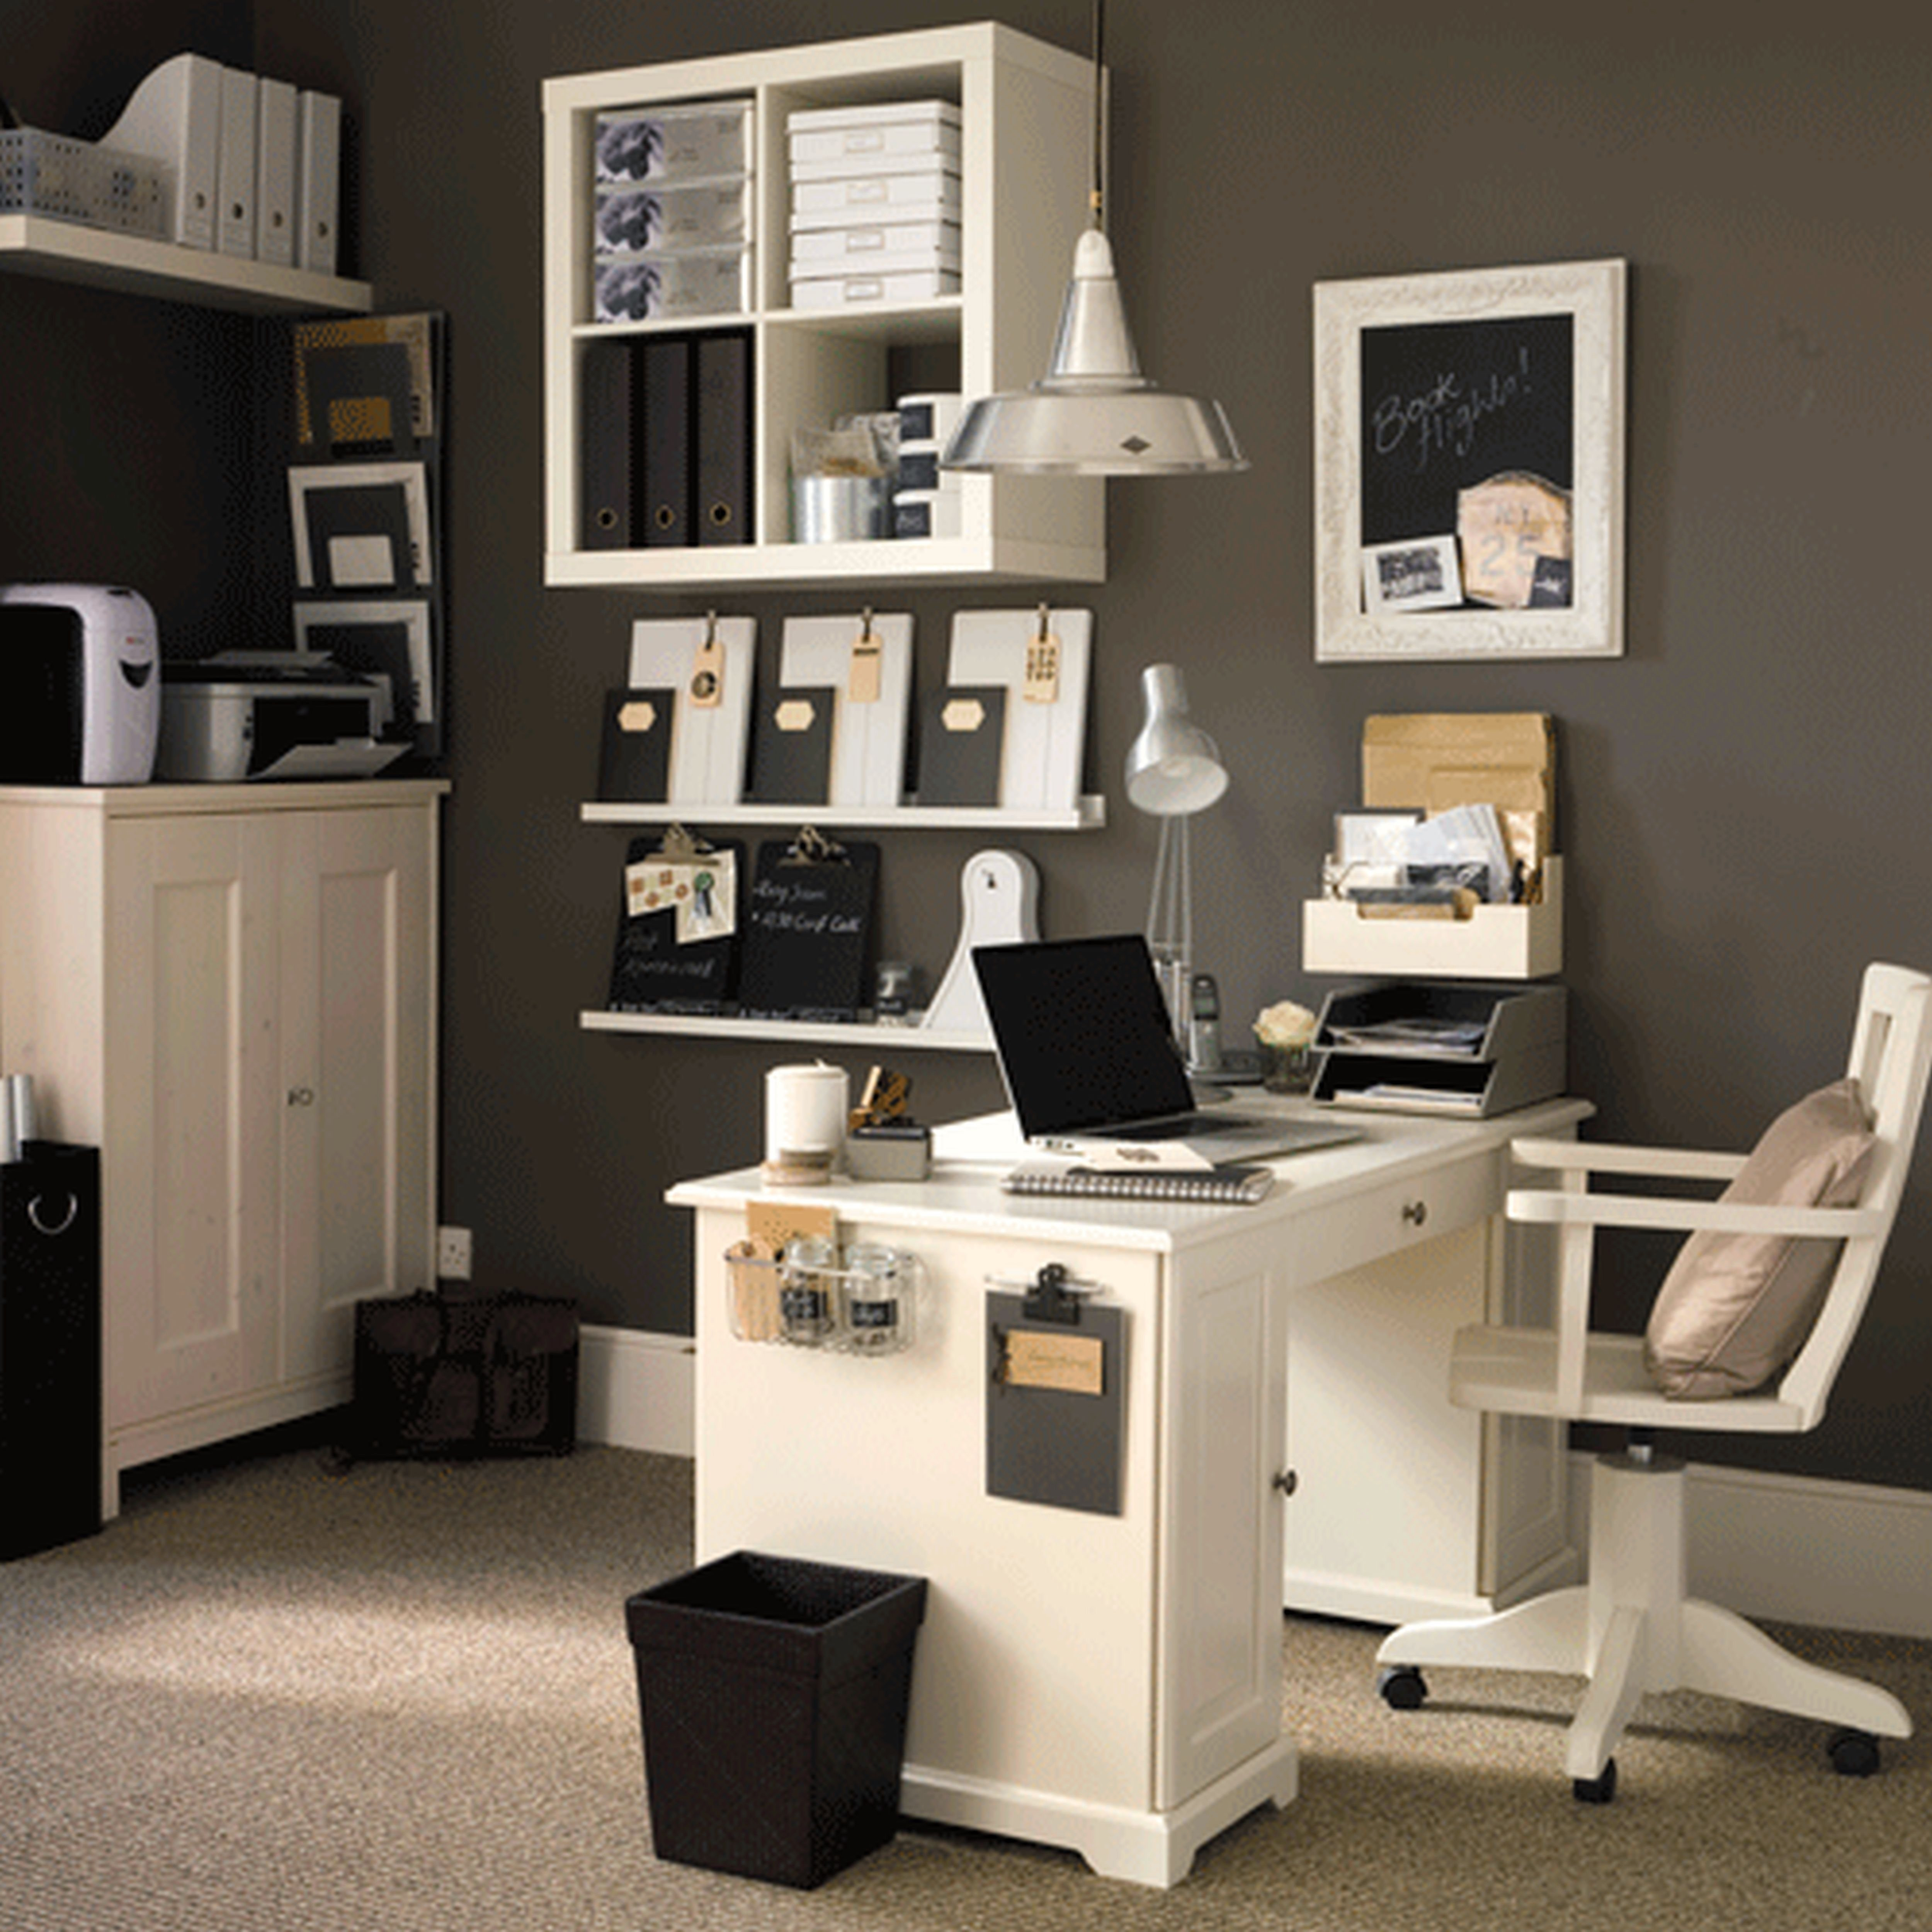 10 Best Decorating Ideas For Home Office amazing of white office decorating ideas cagedesigngroup 2020